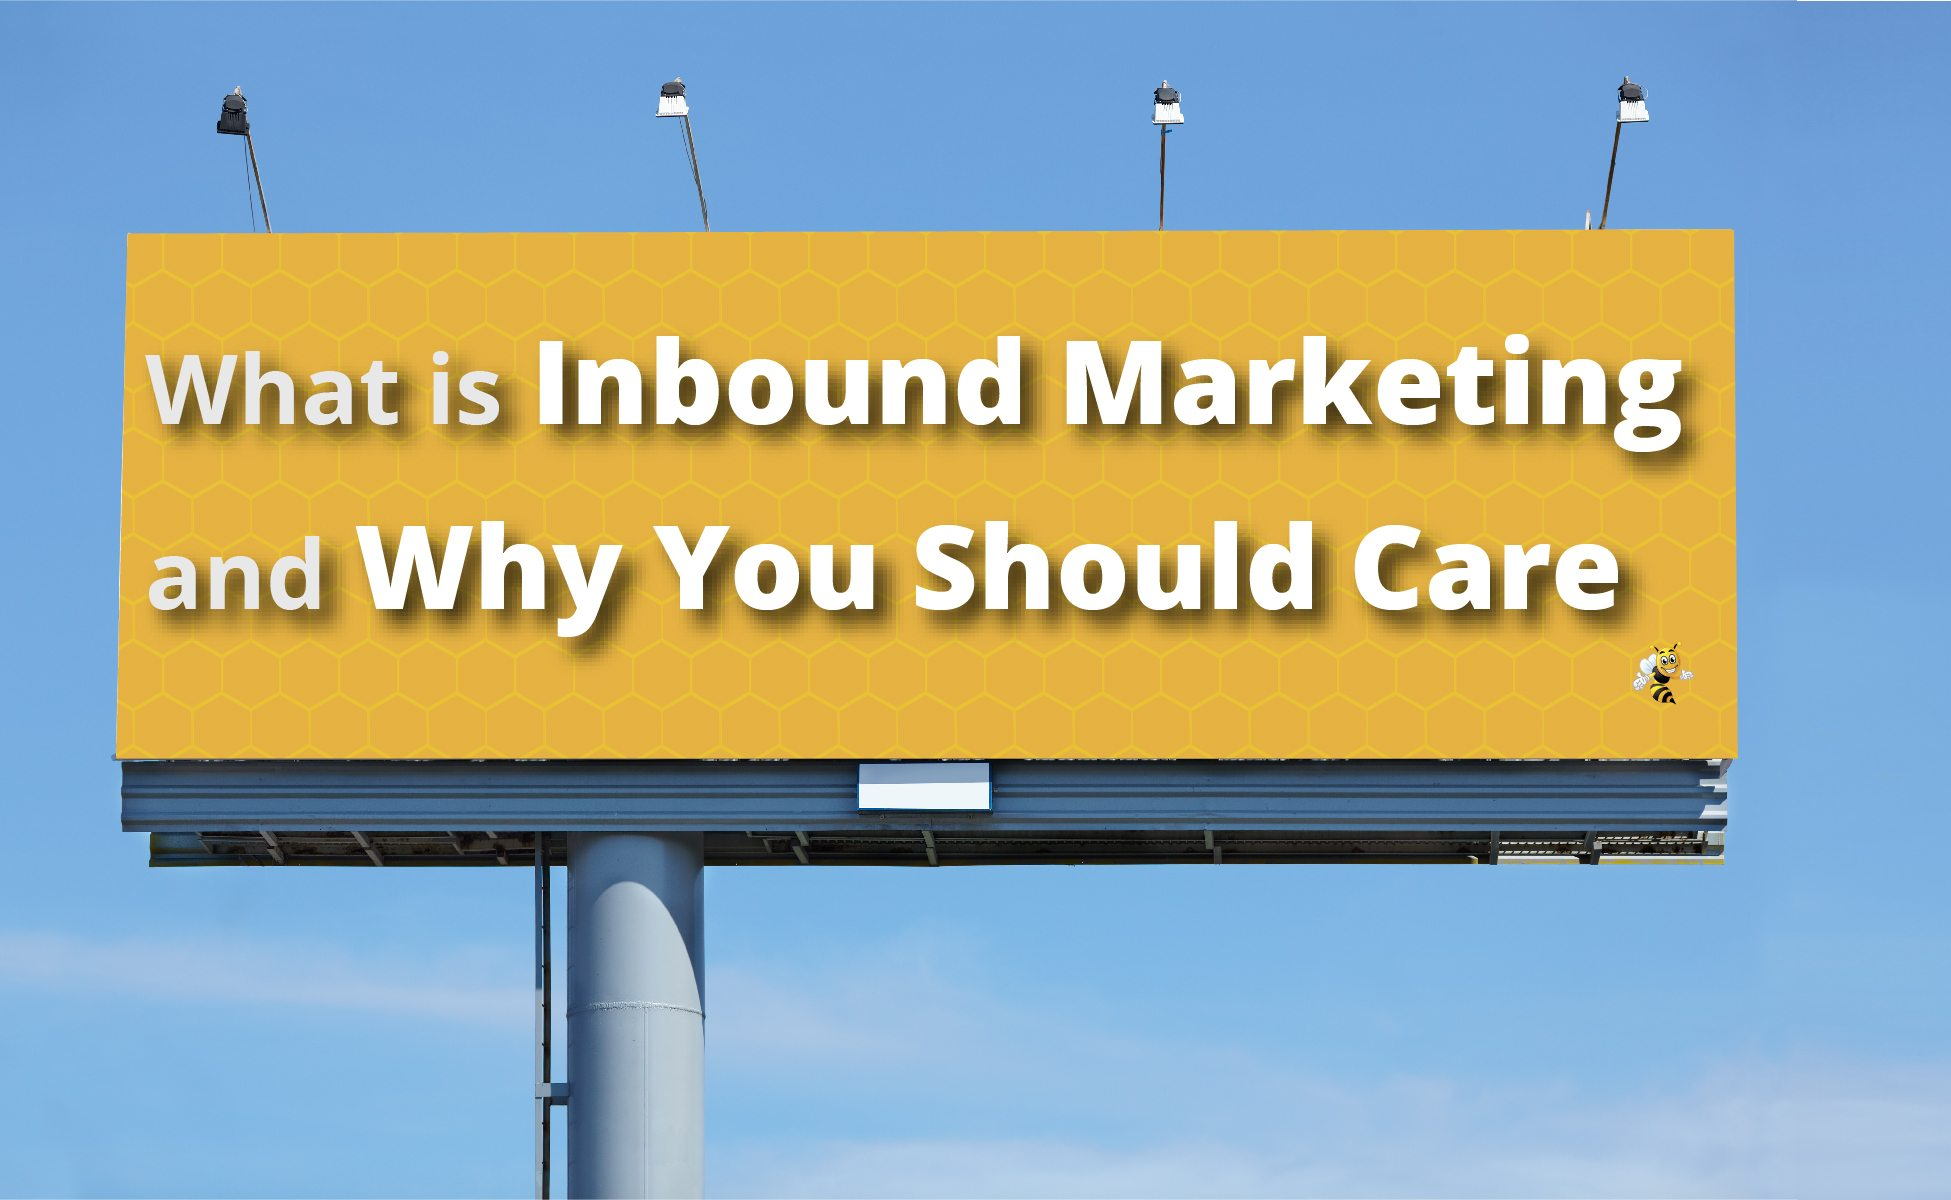 What is Inbound Marketing and Why You Should Care